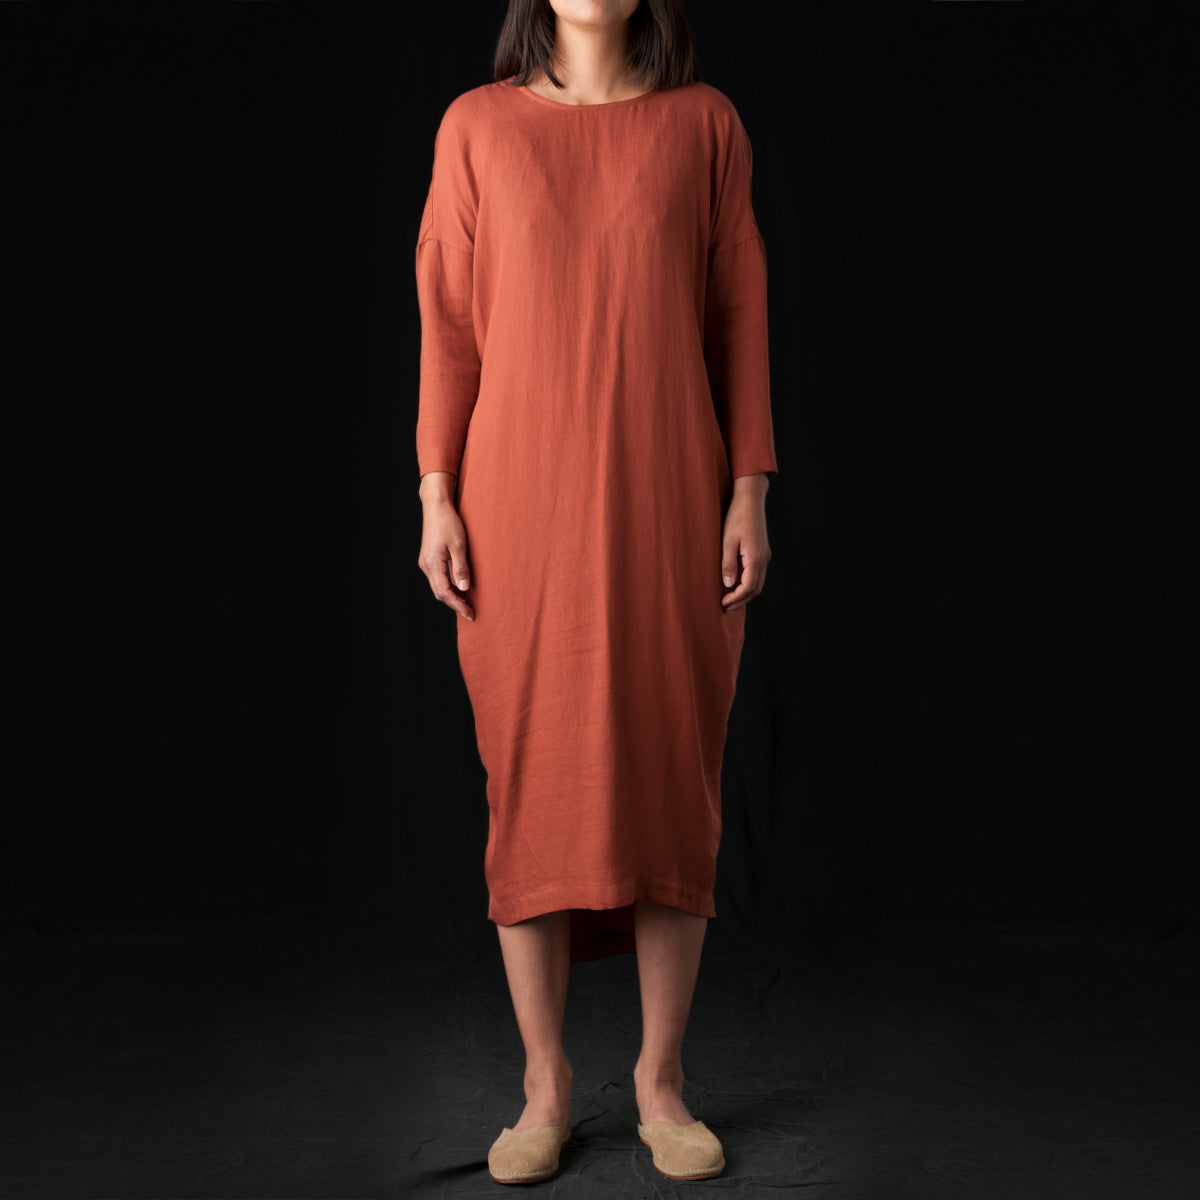 cdc7d00e073 Black Crane - Pleated Cocoon Dress in Brick - UNIONMADE